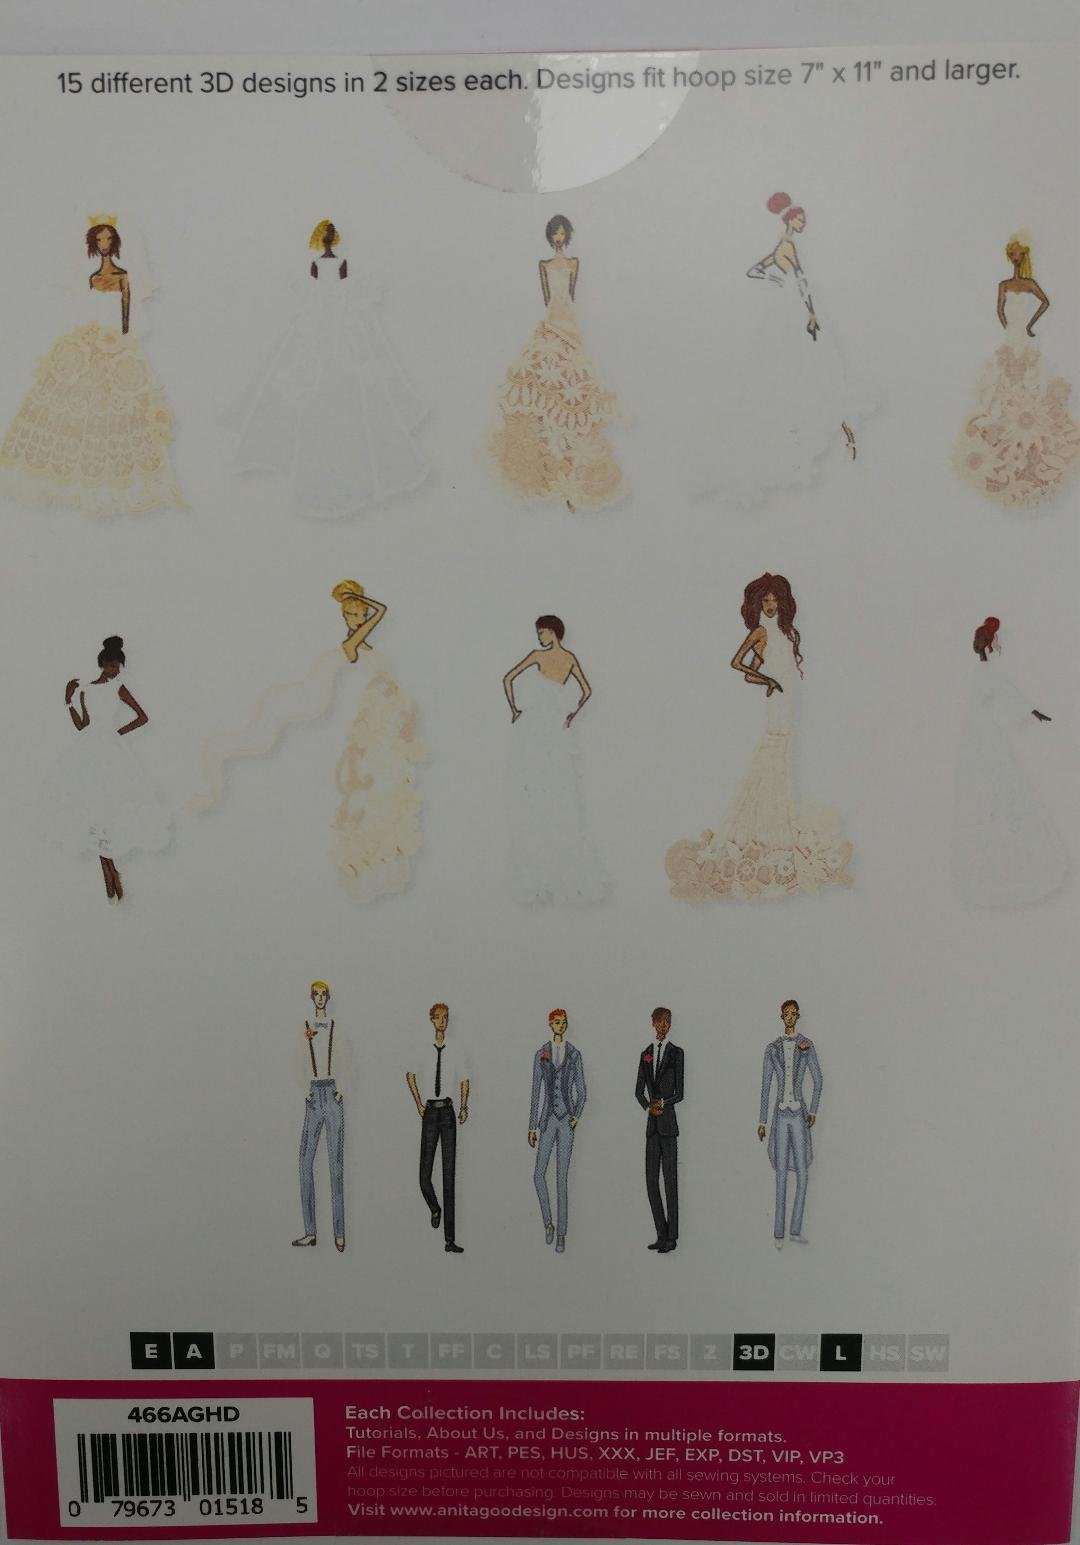 AGD Lace Bridal Figures Full Collection